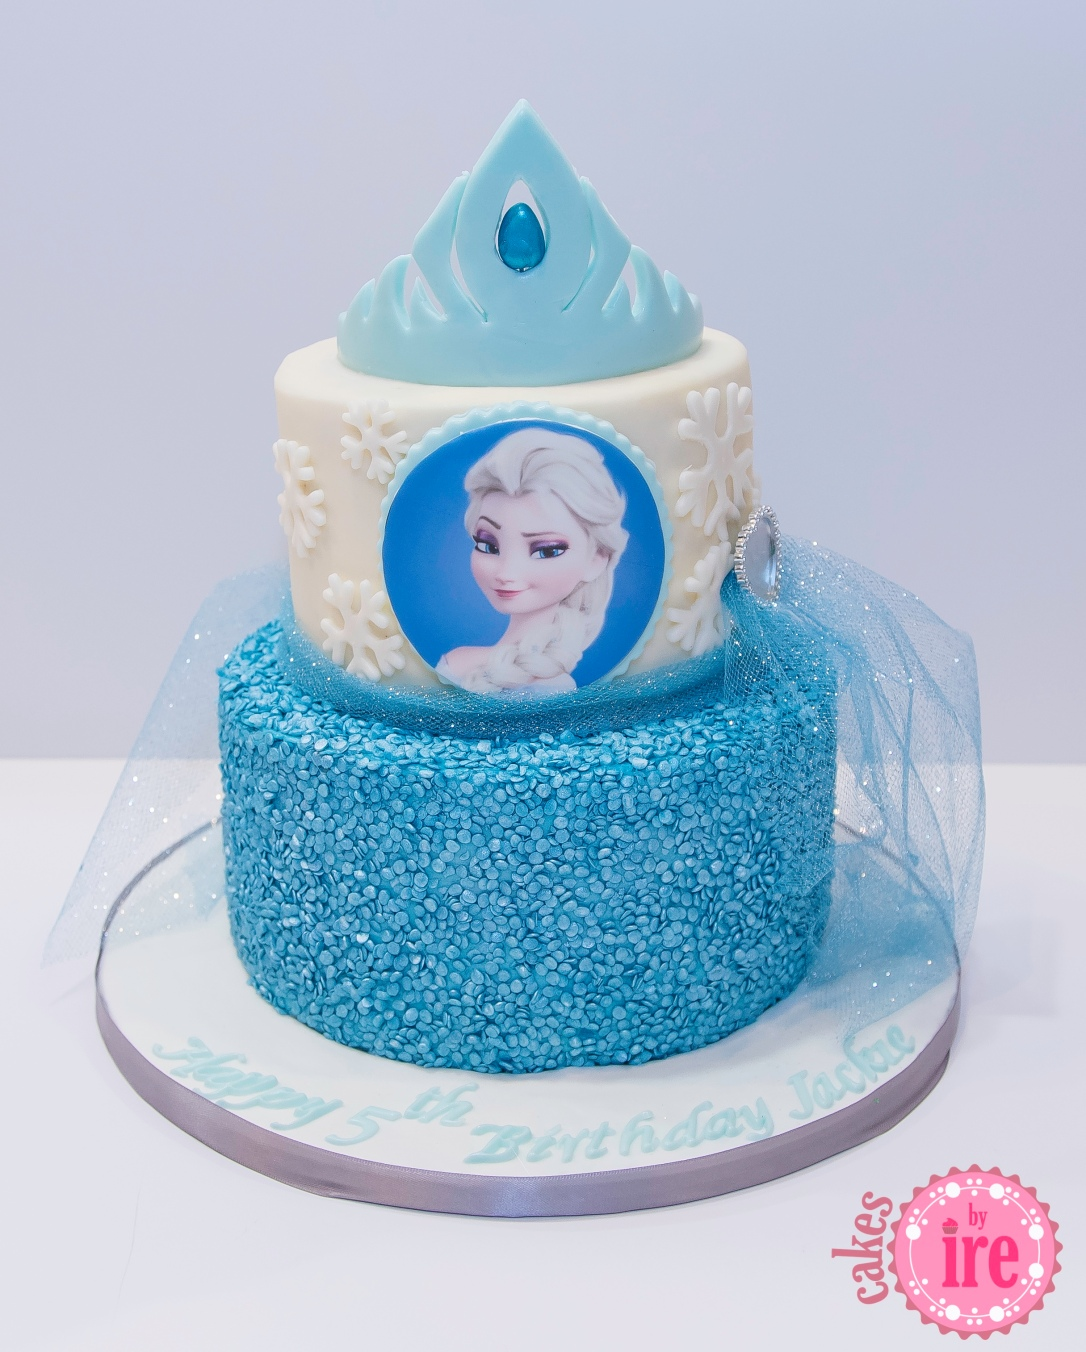 Remarkable Princess Cakes By Ire Funny Birthday Cards Online Elaedamsfinfo